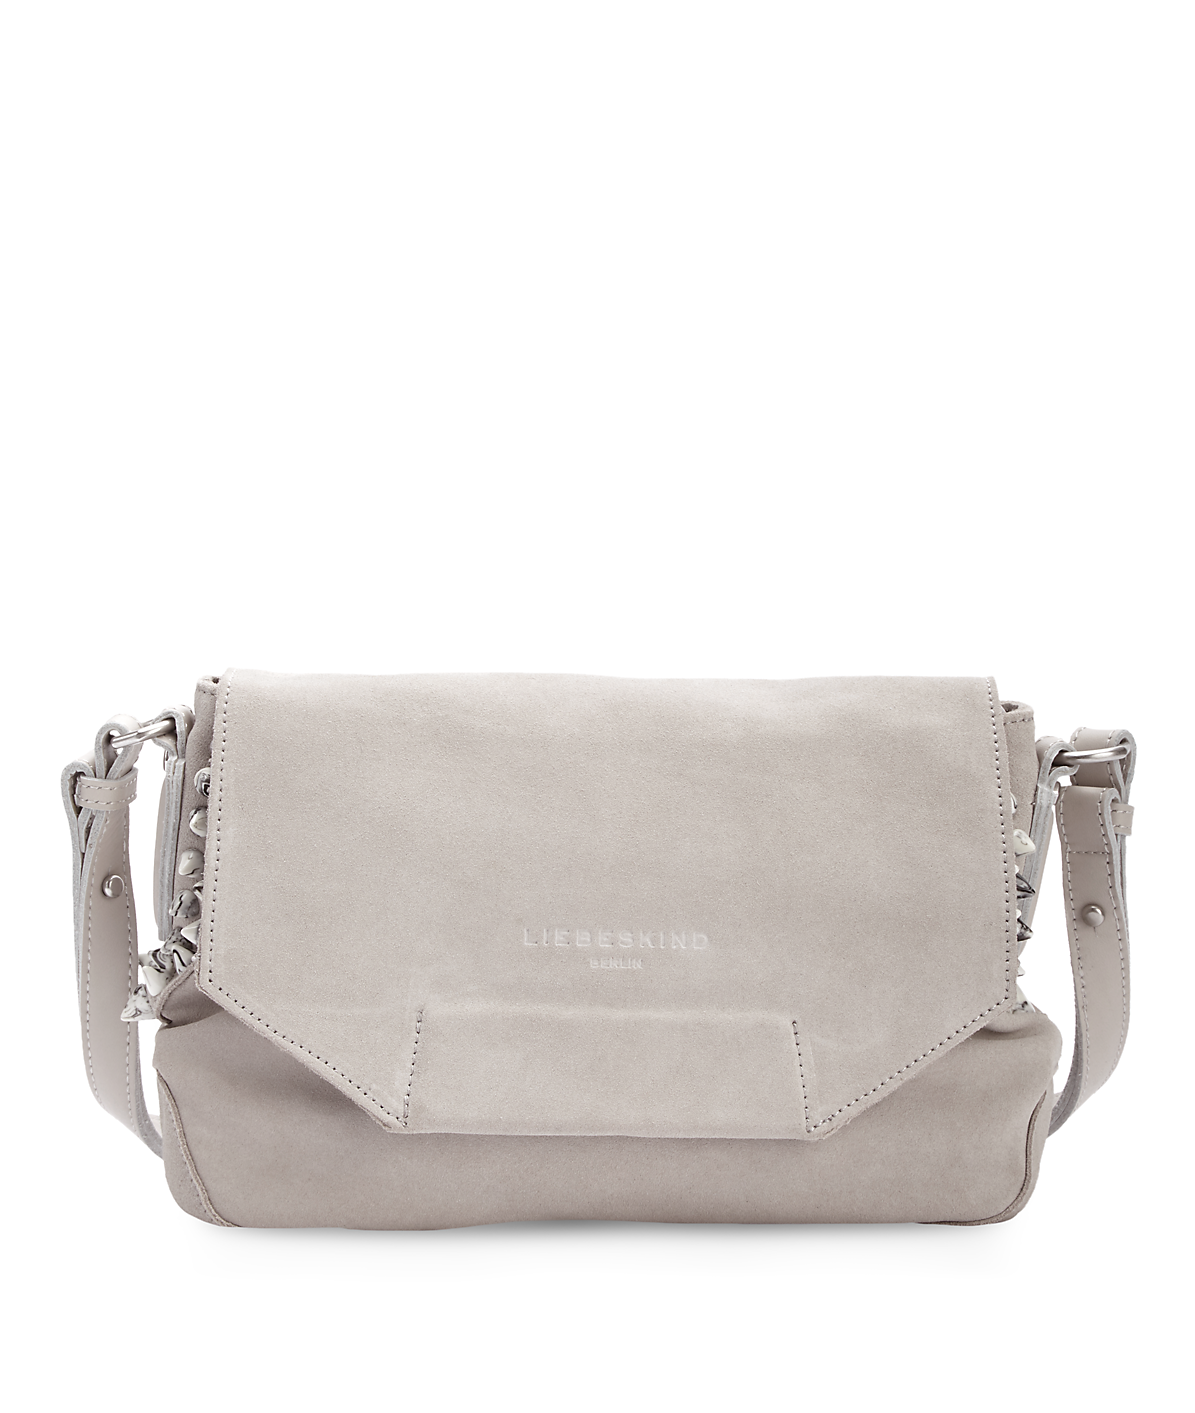 Handbag Yokote F7 from liebeskind